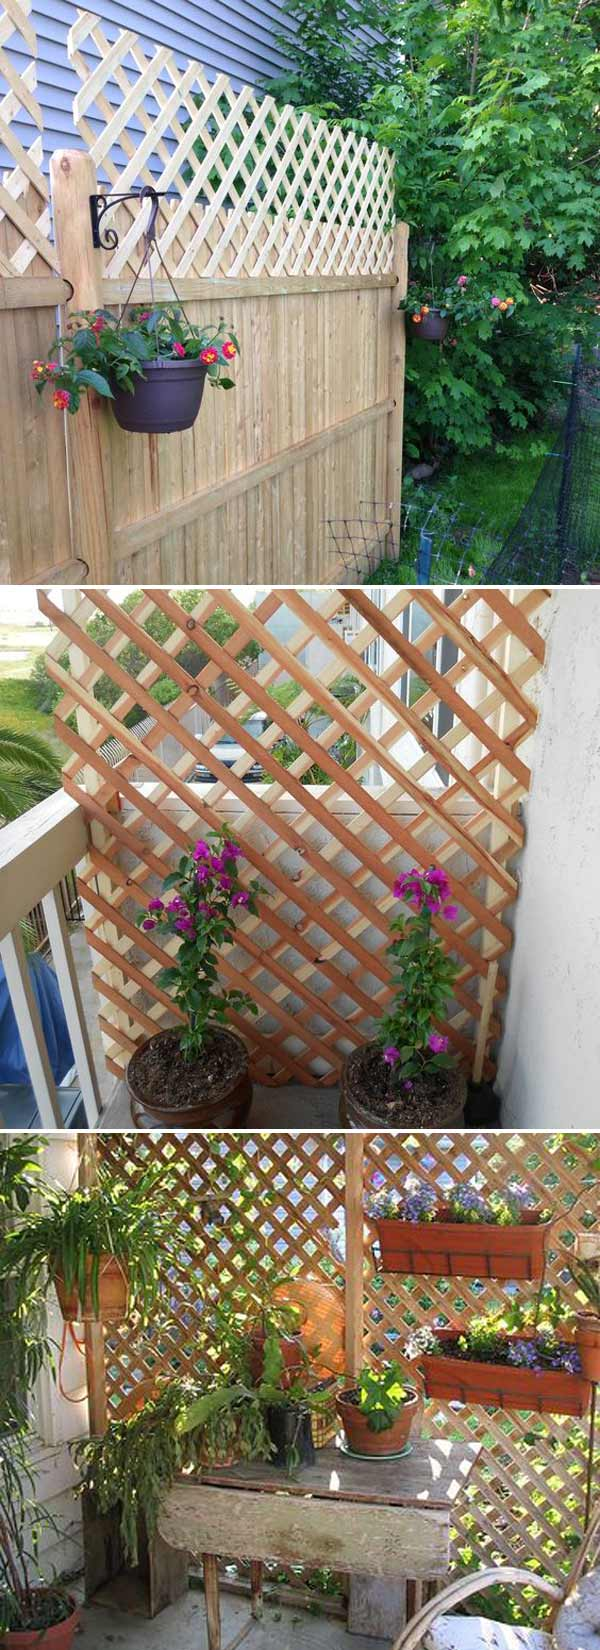 25 Cool Ideas for Getting Privacy in Summer Patio and Yard – LazyTries